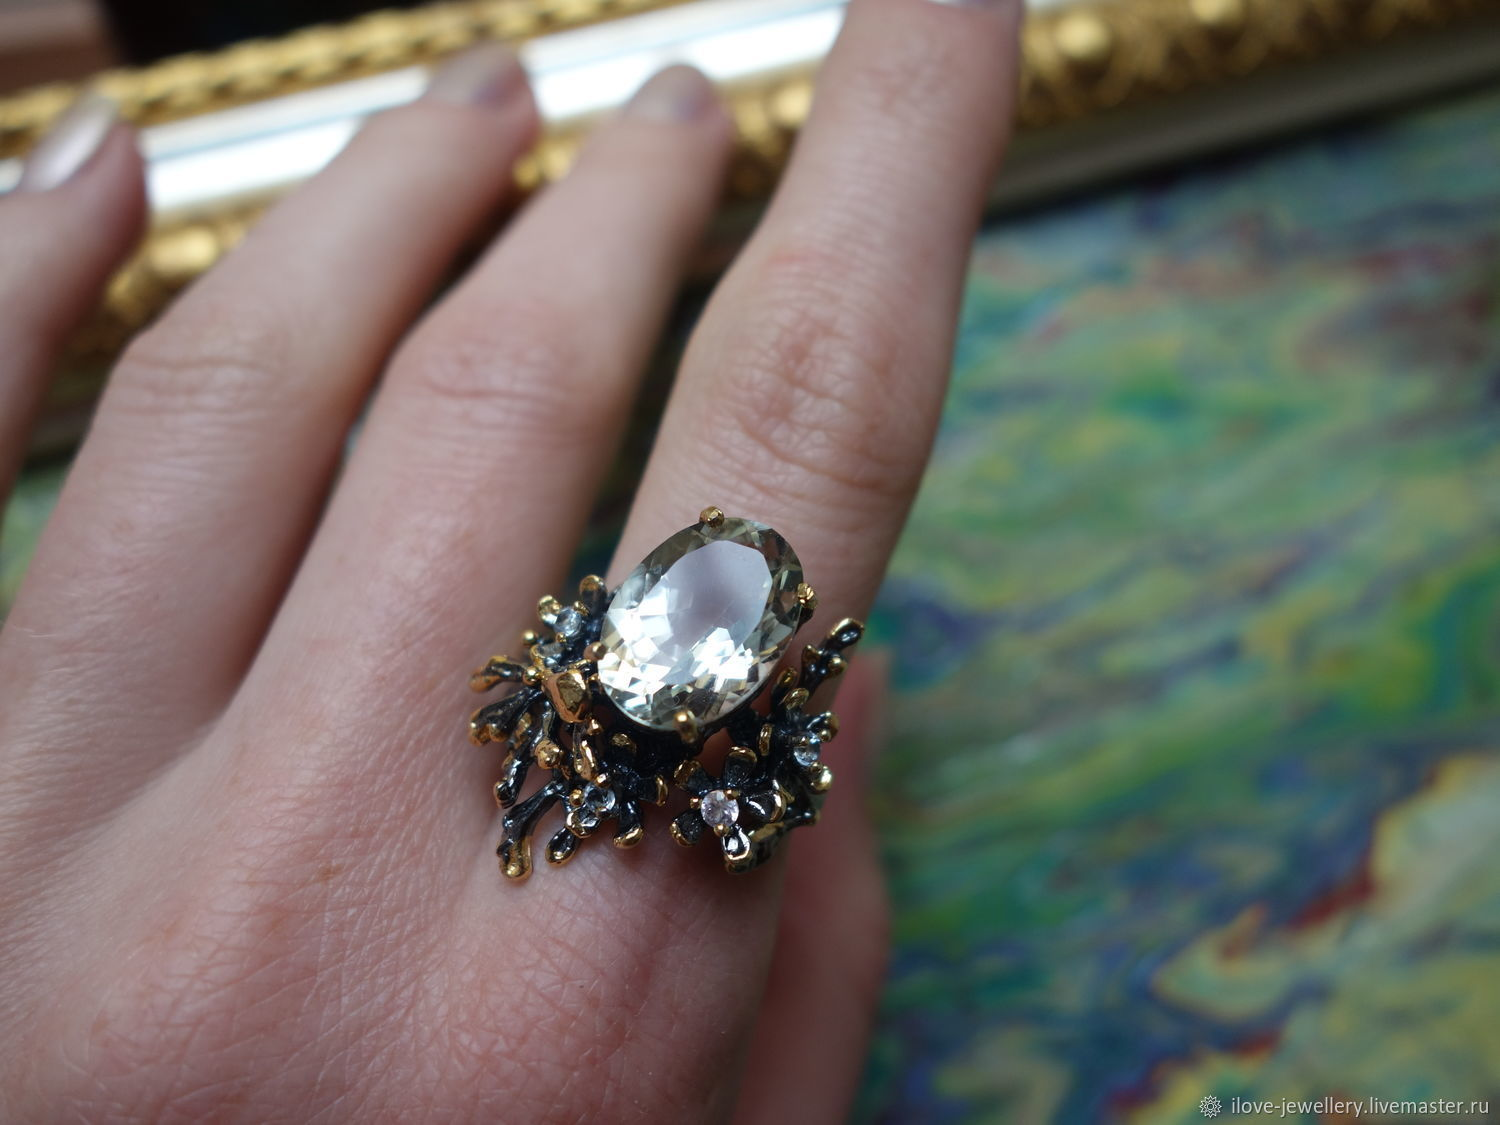 'Vimala ' - a beautiful cocktail ring with green amethyst, Rings, Moscow,  Фото №1